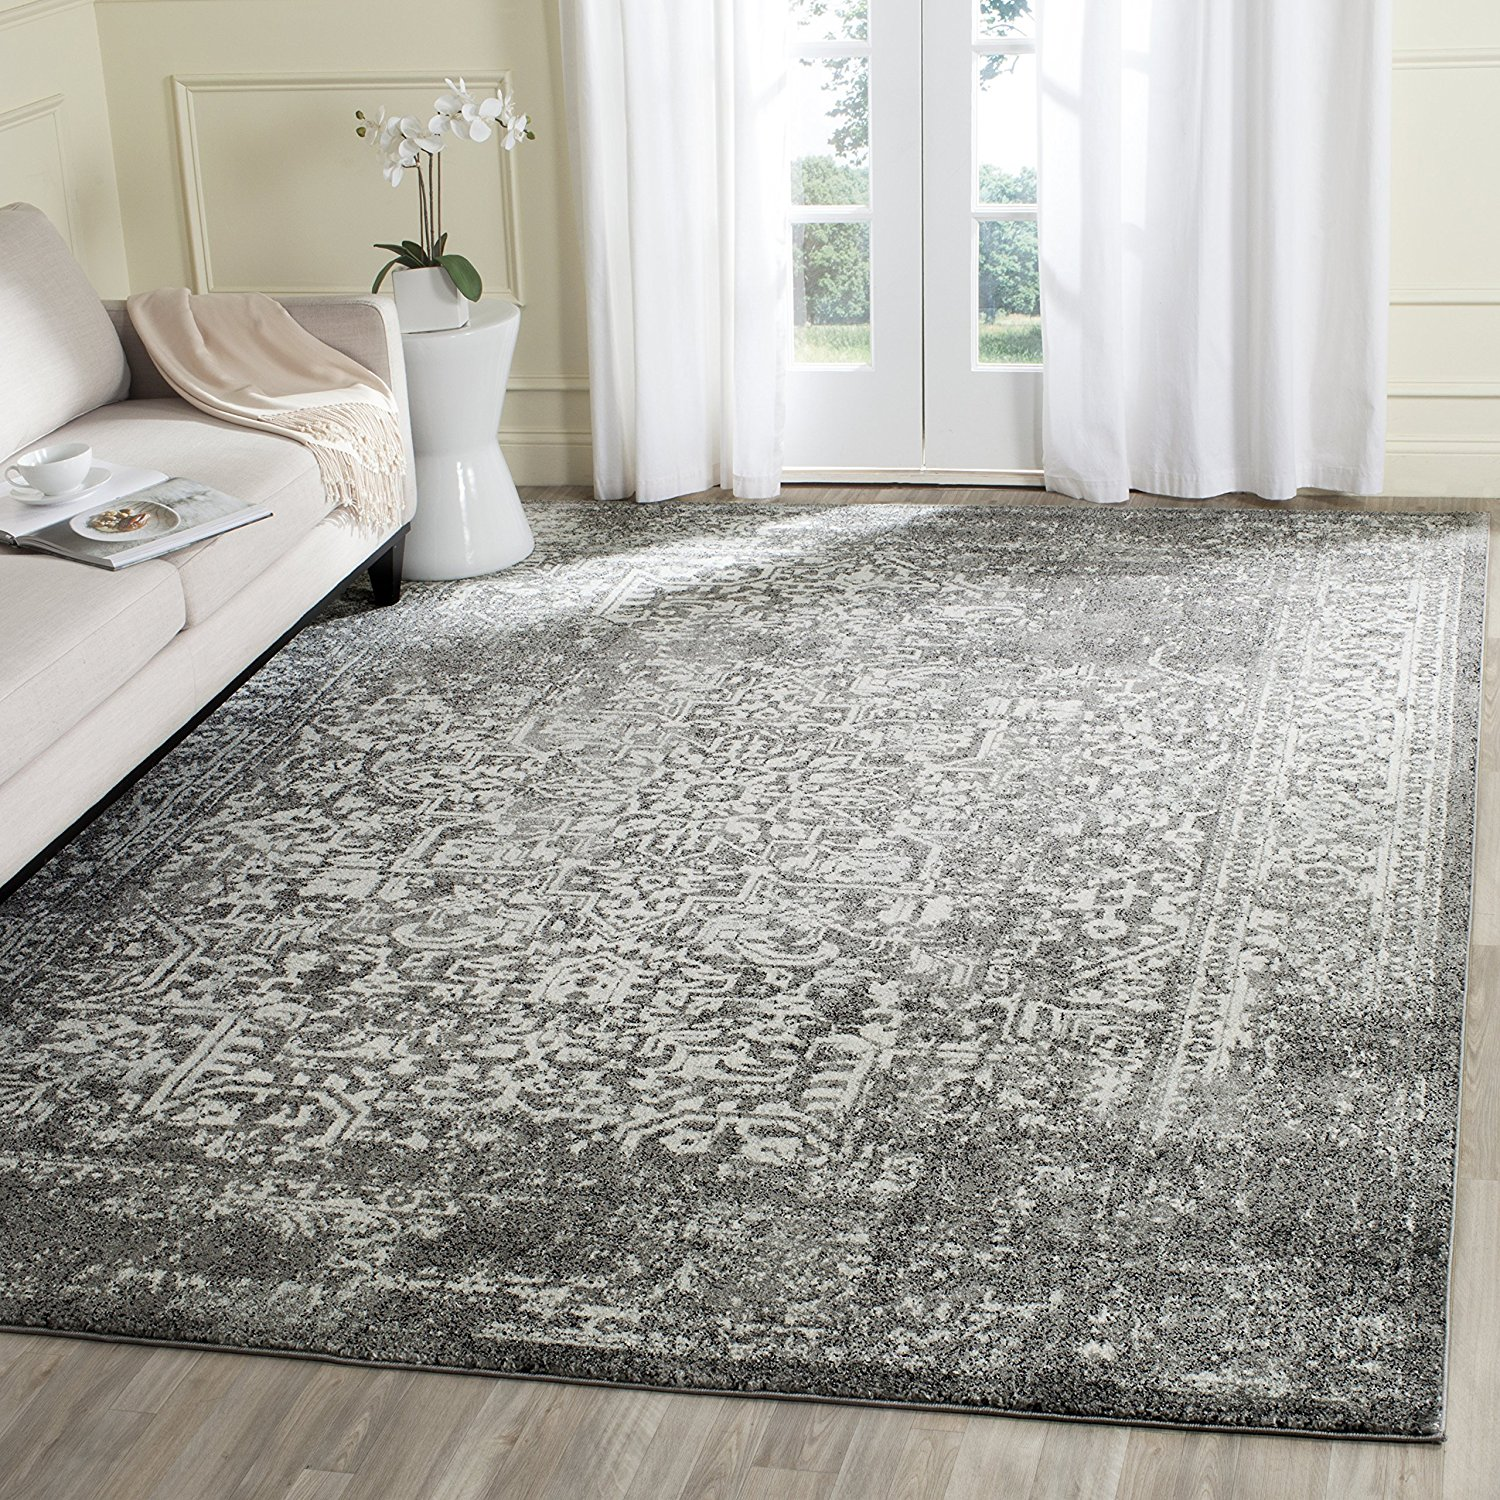 Farmhouse Style Area Rugs Under 100 The Creek Line House